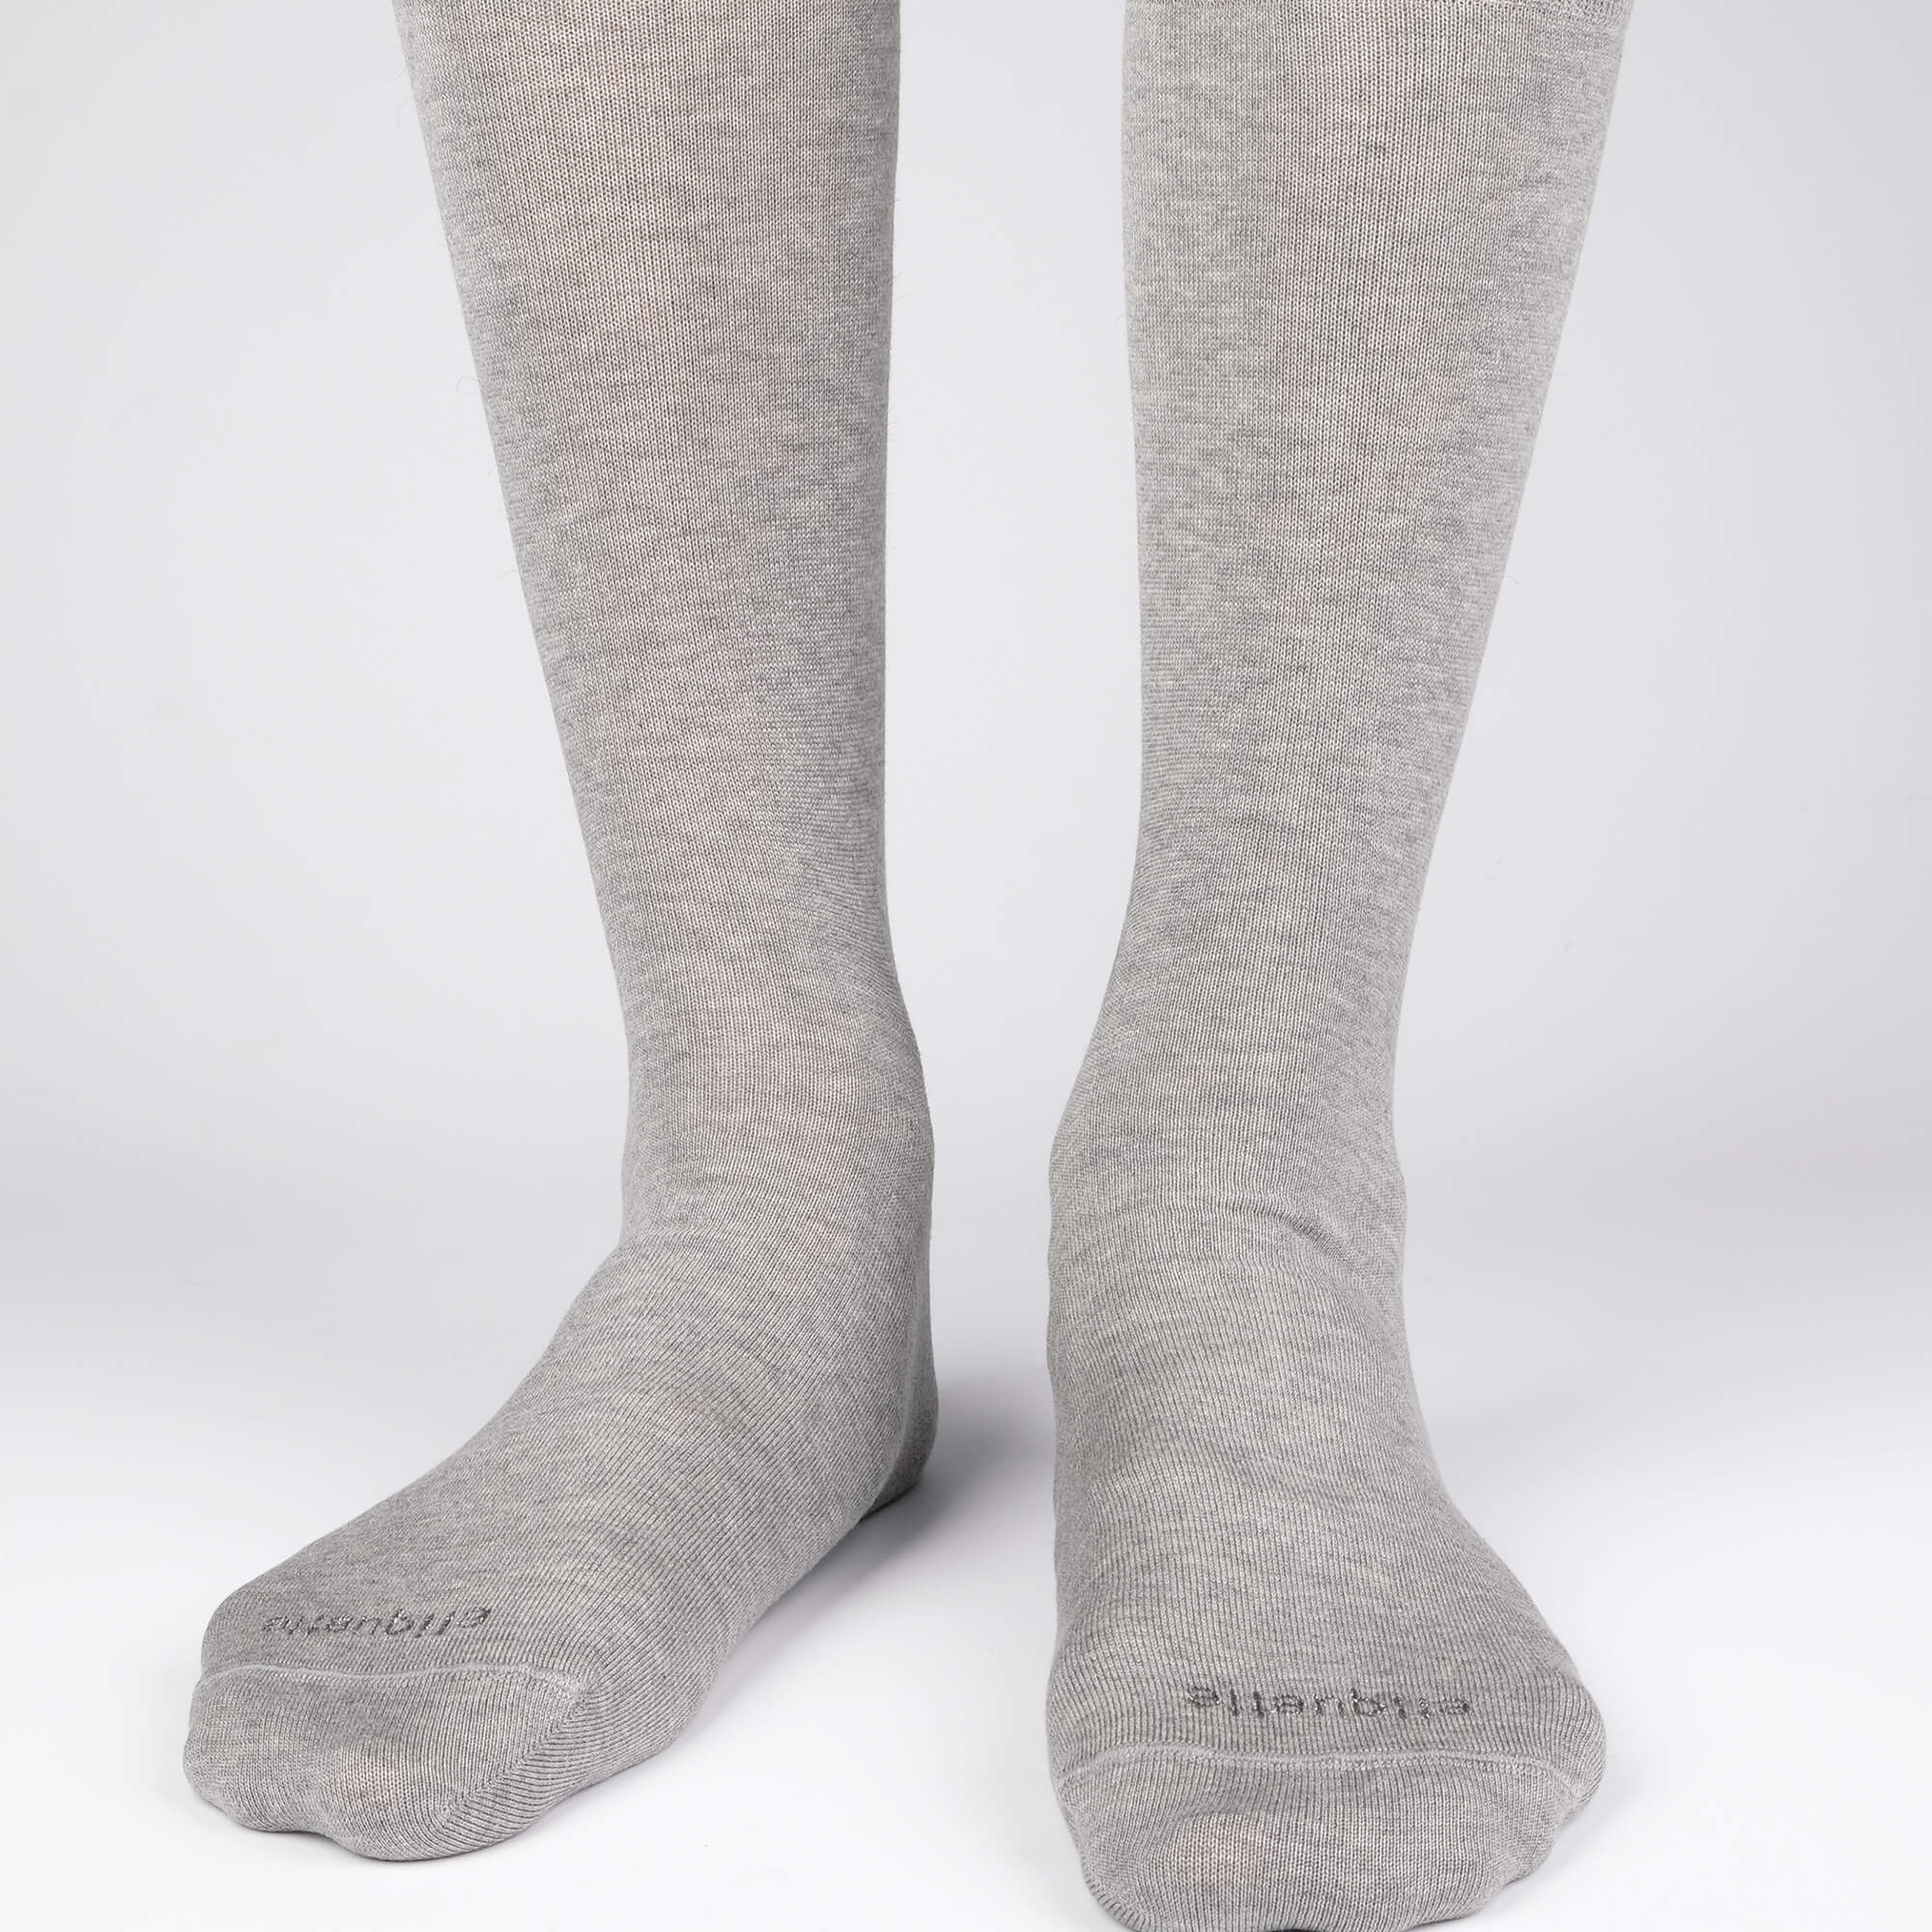 Mens Socks - Basic Luxuries Men's Socks - Light Grey⎪Etiquette Clothiers